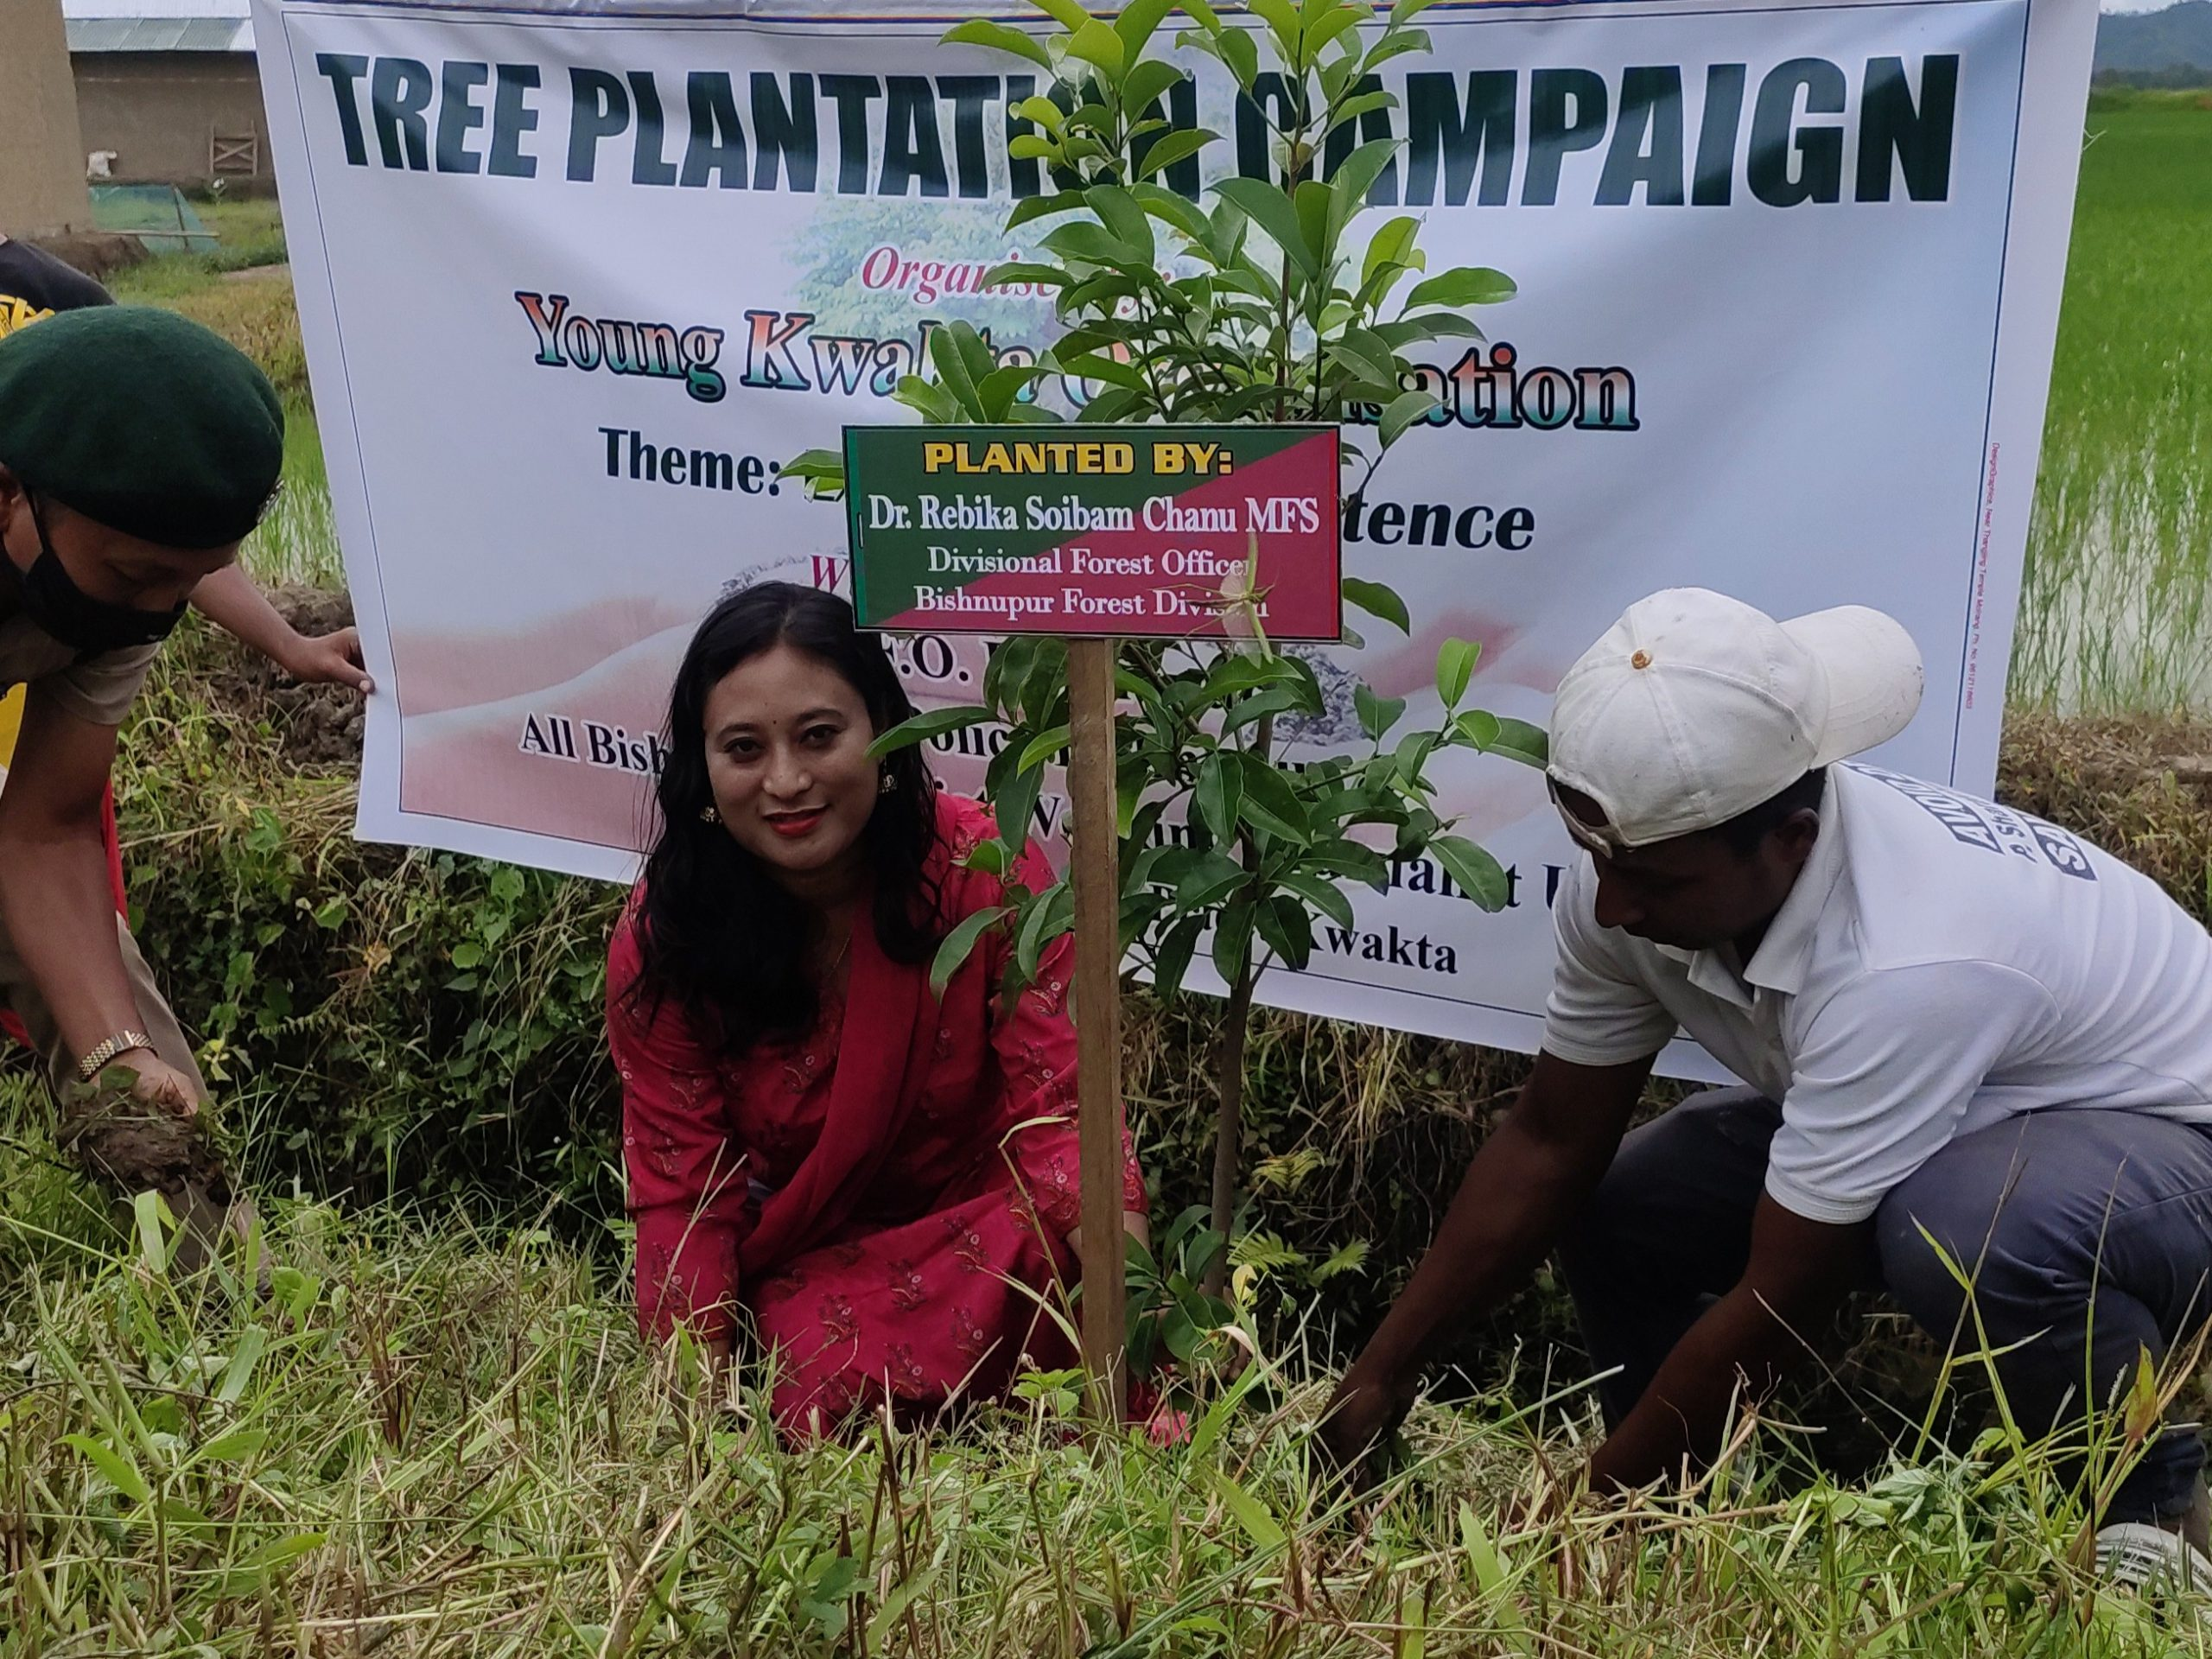 Campaign on Tree plantation held